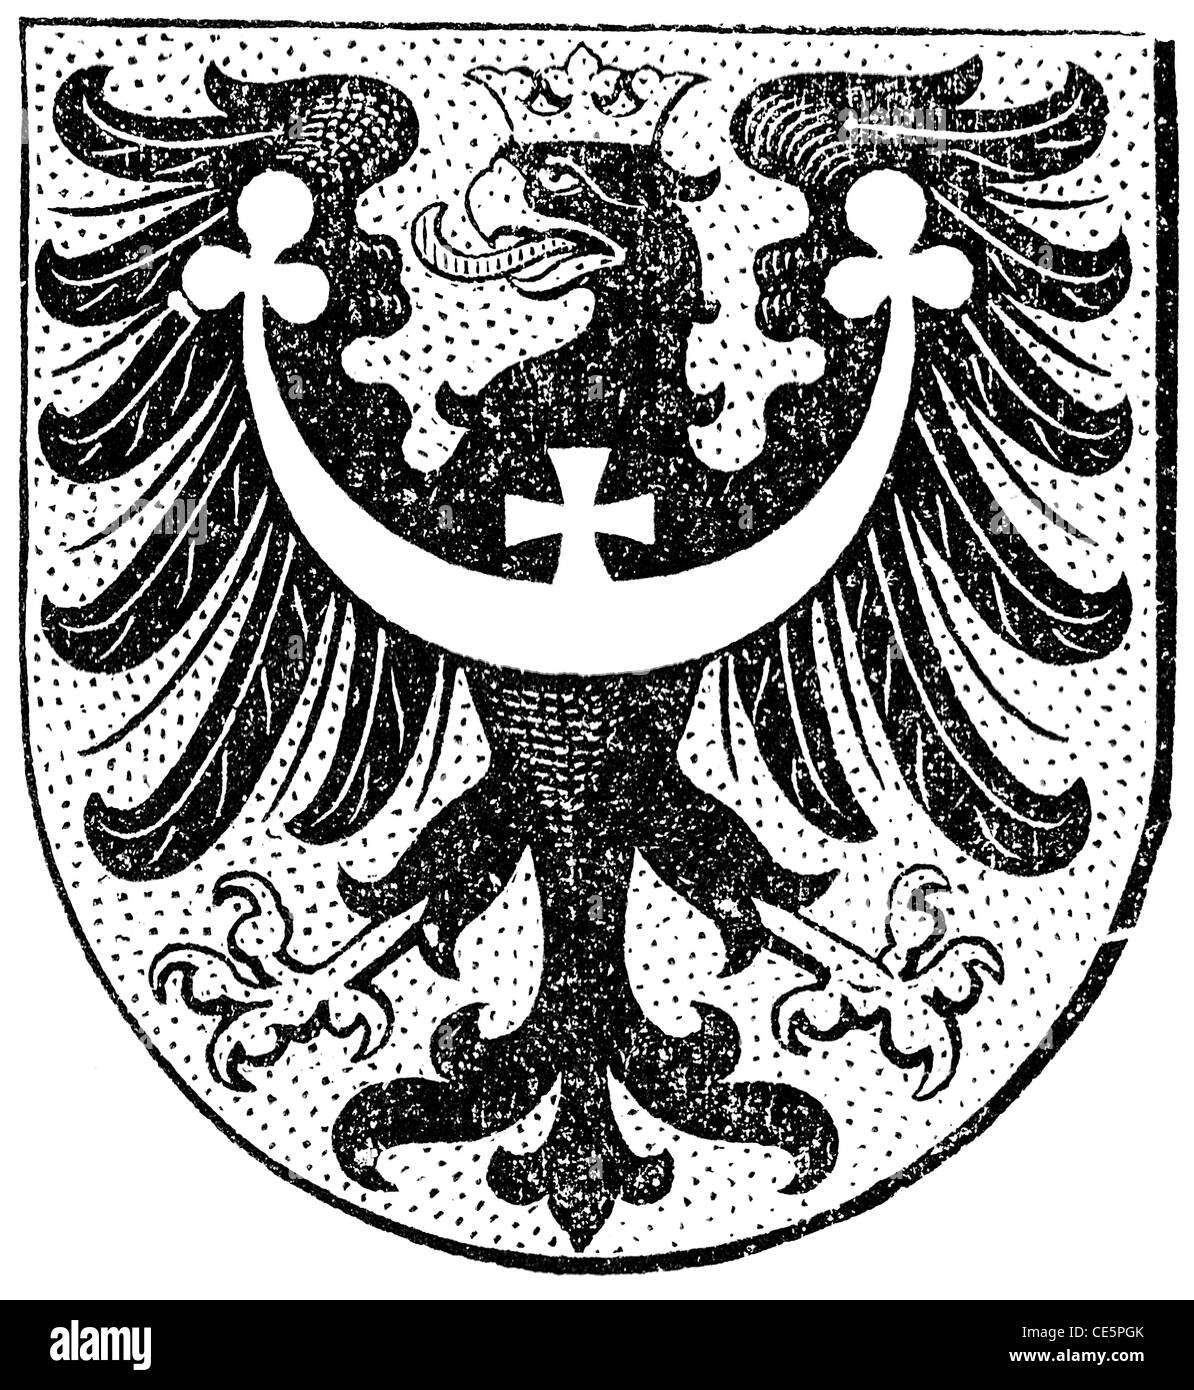 Coat of arms of Silesia, (Austro-Hungarian Monarchy) - Stock Image